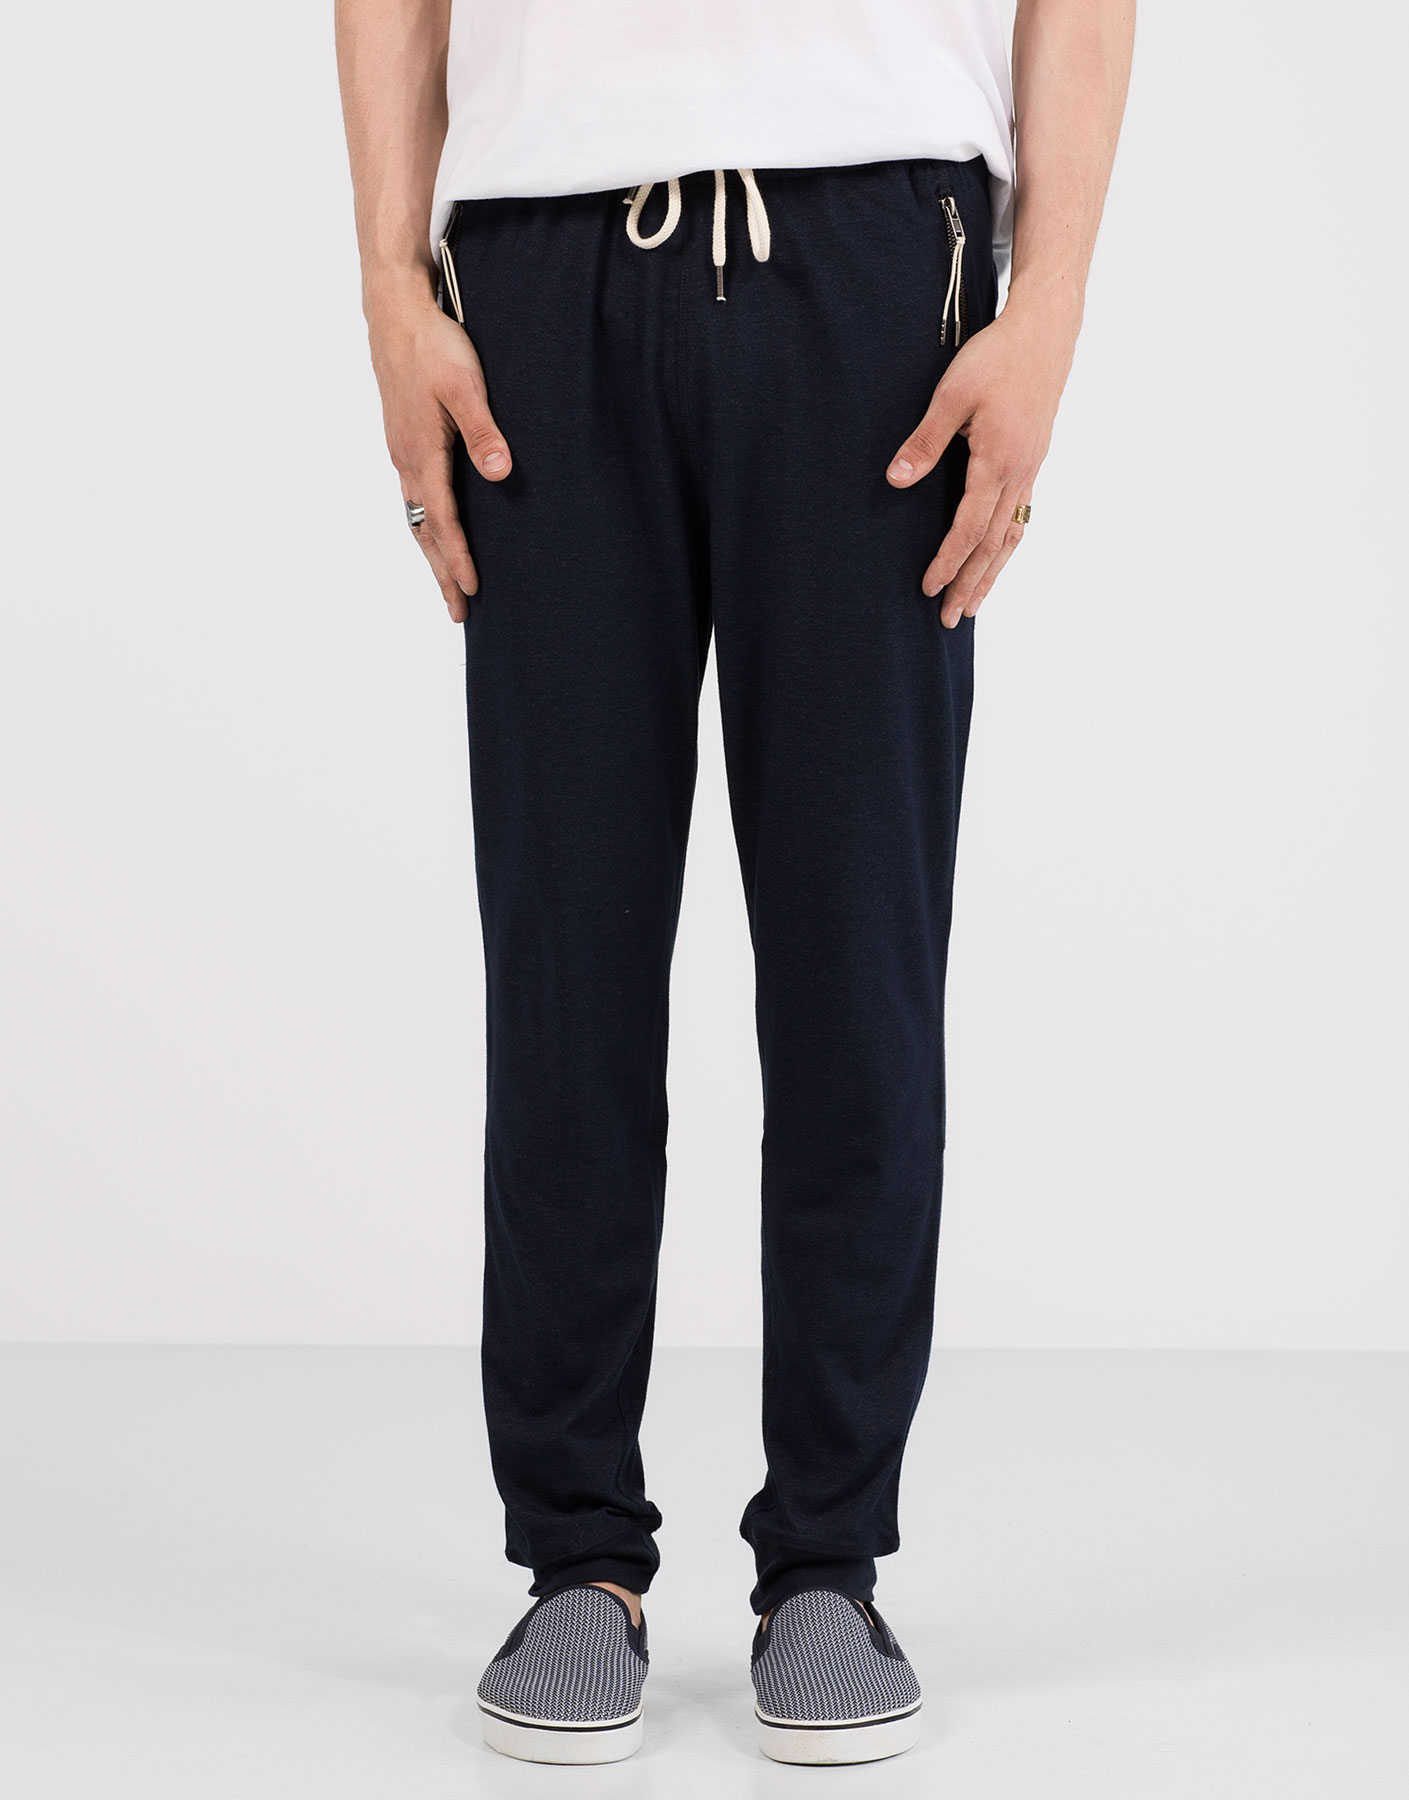 Thin jogging trousers